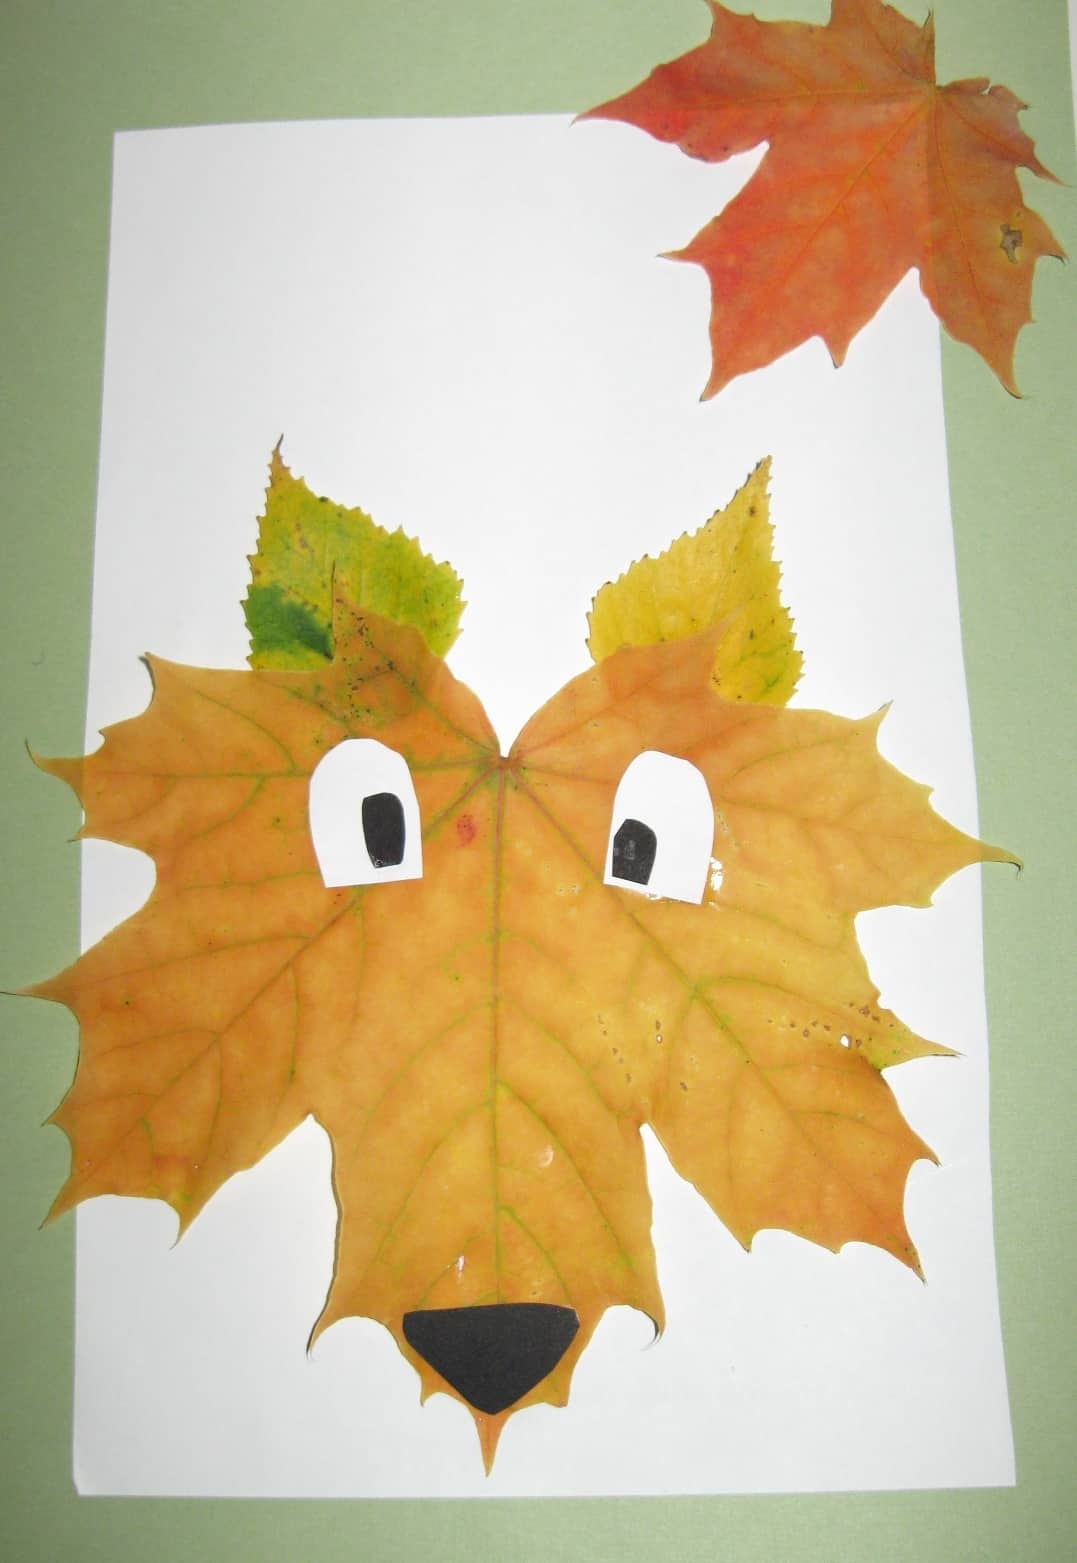 Pasted leaf puppy dog